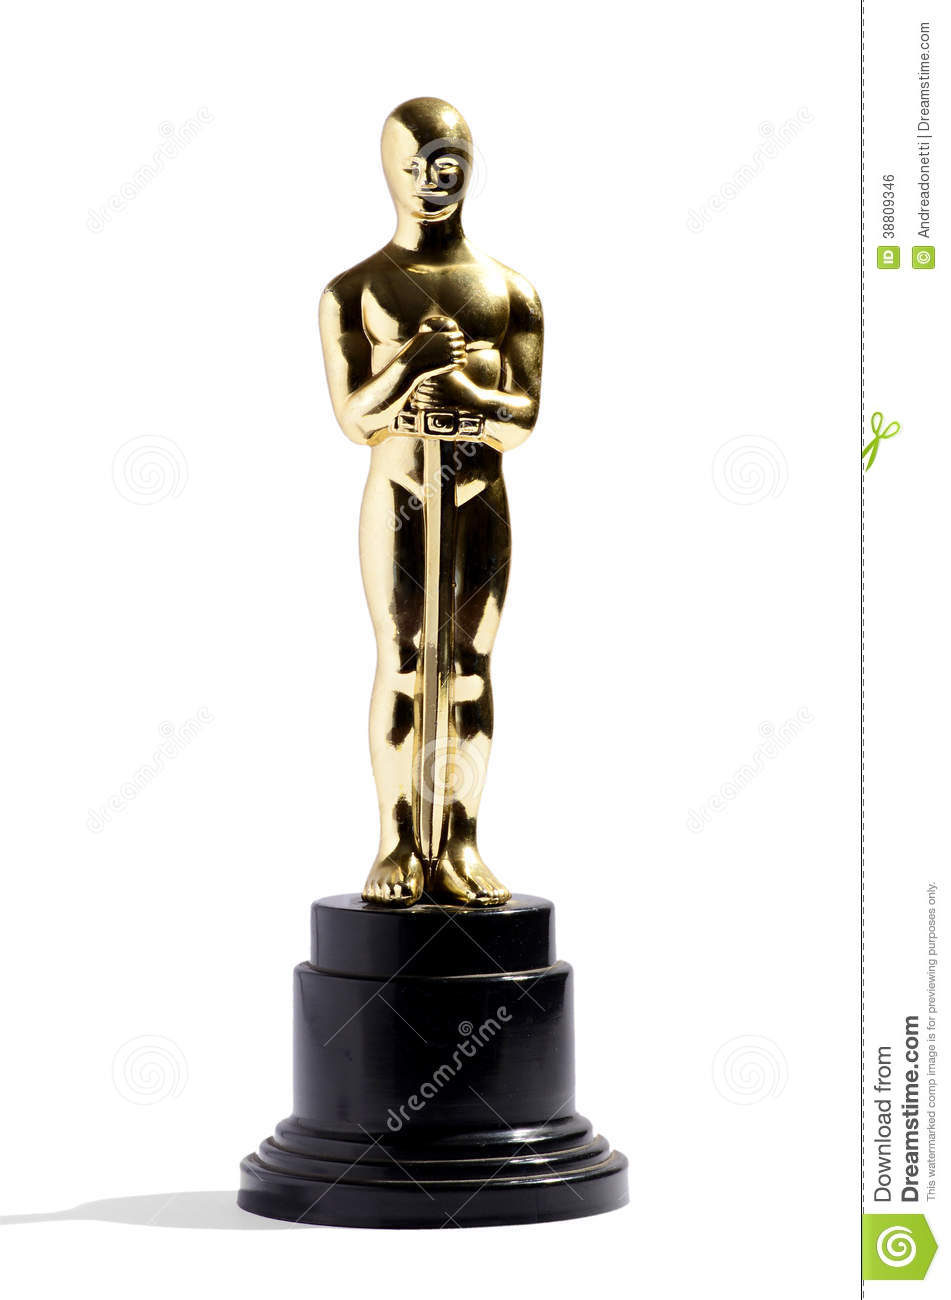 Royalty Free Stock Image Replica Oscar Award Golden Film Black Plinth Isolated White Vertical Format Image38809346 besides The First Oscar Statuette Won By Charlie Chaplin Has Been Stolen together with Academy Award For Best Documentary Short Subject i7953172 additionally Gold Triple Star Multisport Award 178mm 7 moreover Viewing party. on oscar award trophy